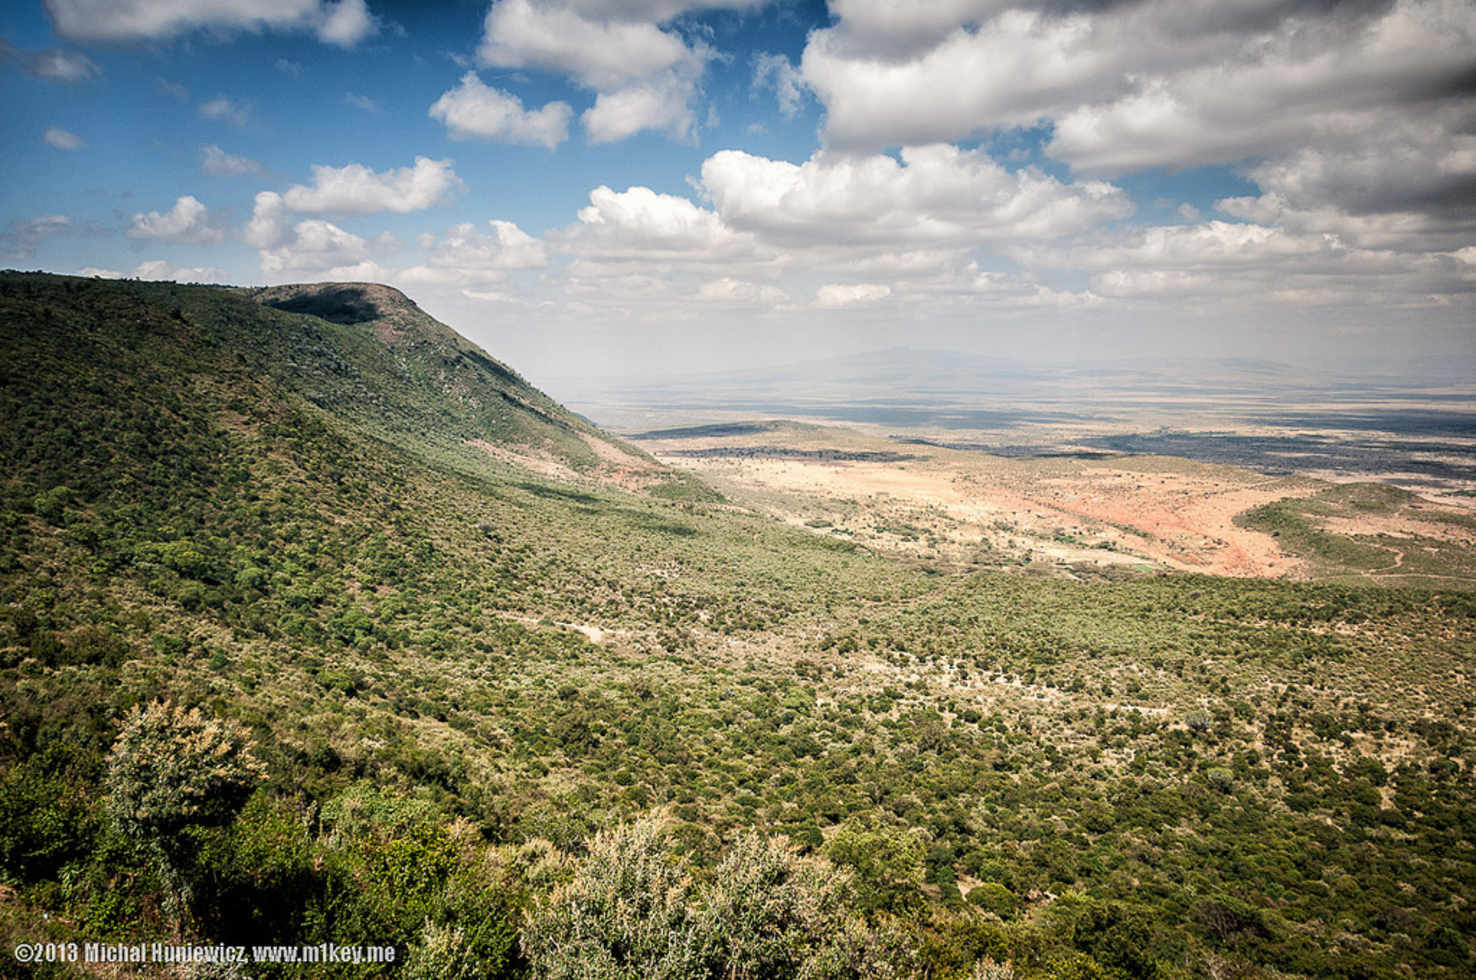 Large great rift